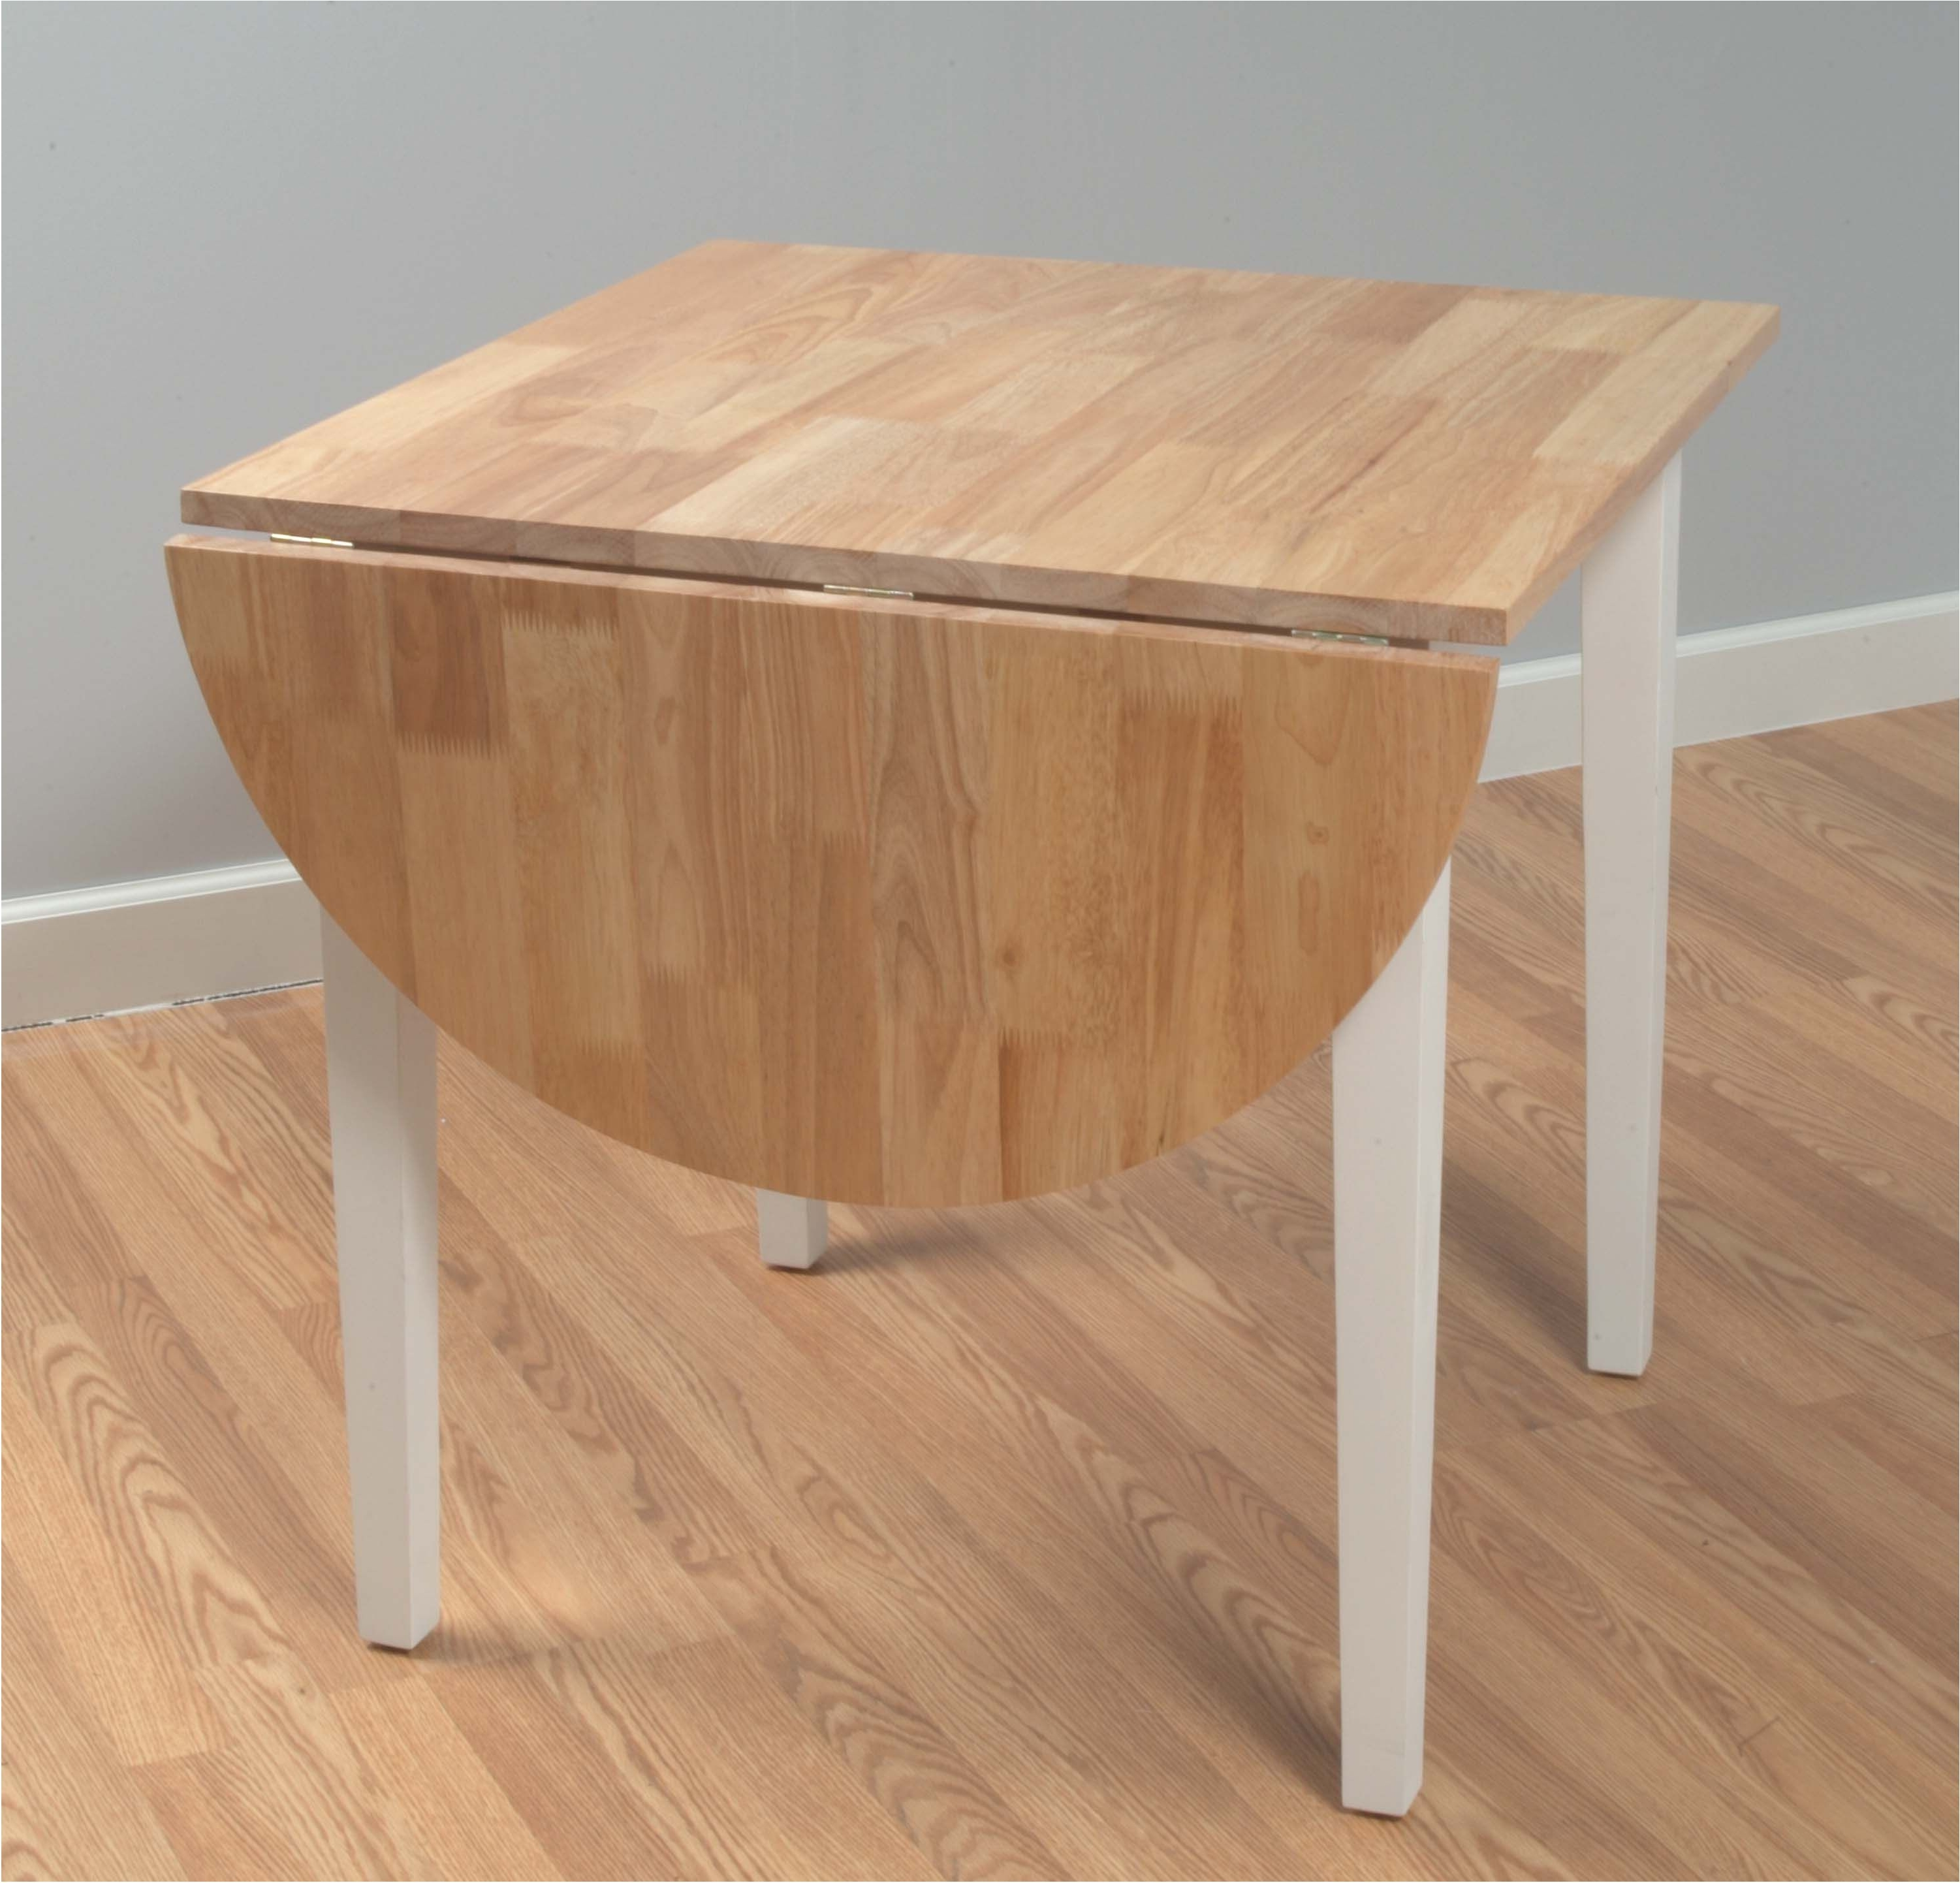 Best Tms Tiffany Drop Leaf Dining Table 16307 – Drop Leaf Dining Pertaining To 2018 Cheap Drop Leaf Dining Tables (View 4 of 25)